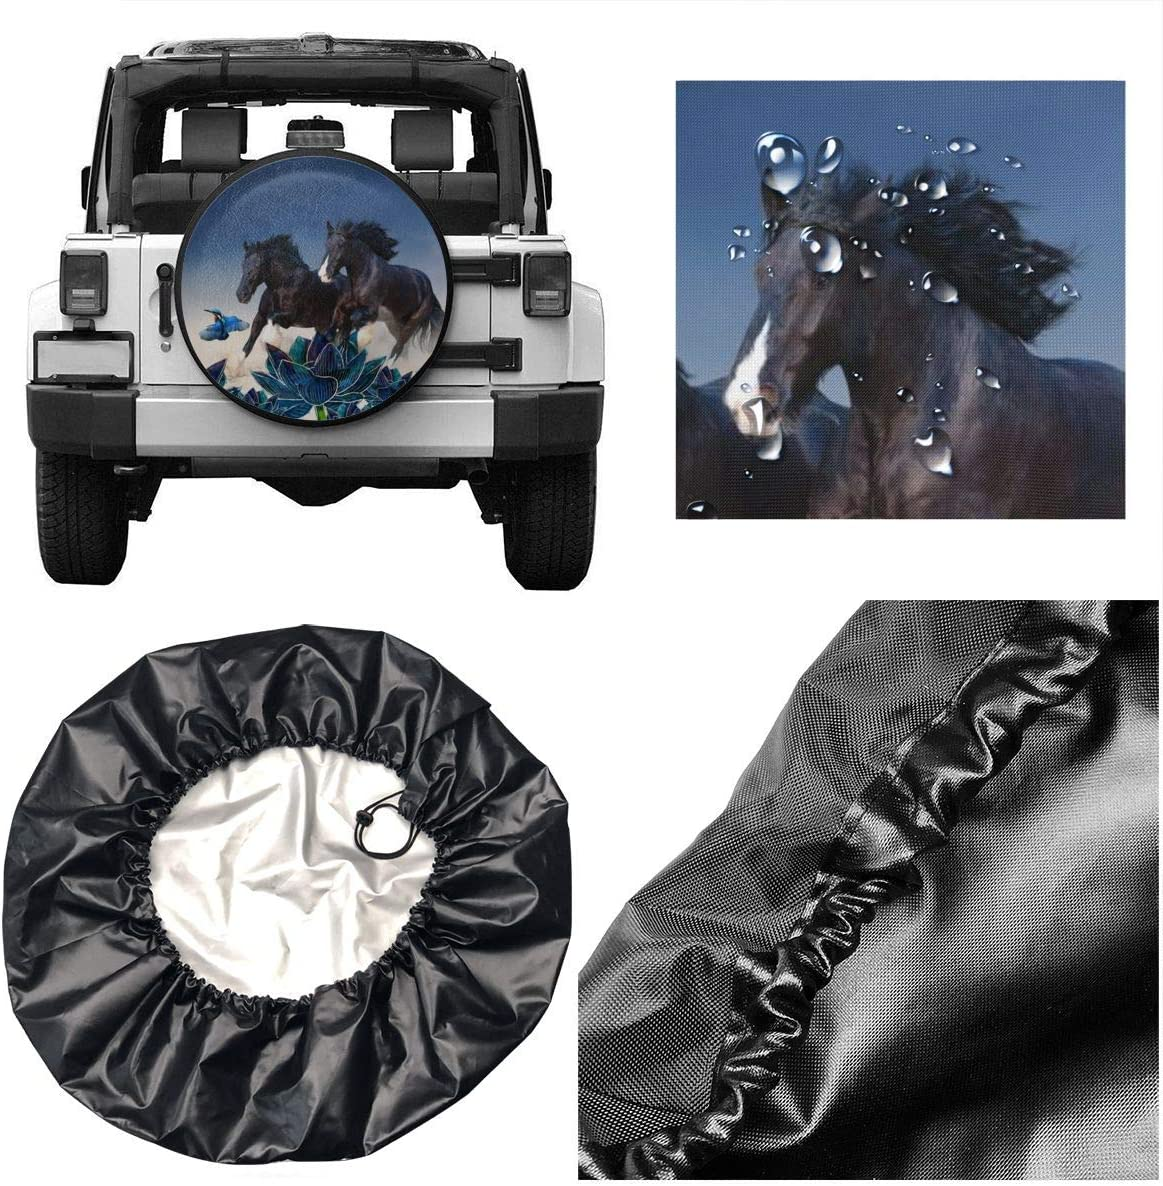 Universal Wheel Tire Protectors,Camper Travel Car Weatherproof Accessories Diameter 14 Inch BRECKSUCH Black Horse Run Kicking Dust Spare Tire Covers